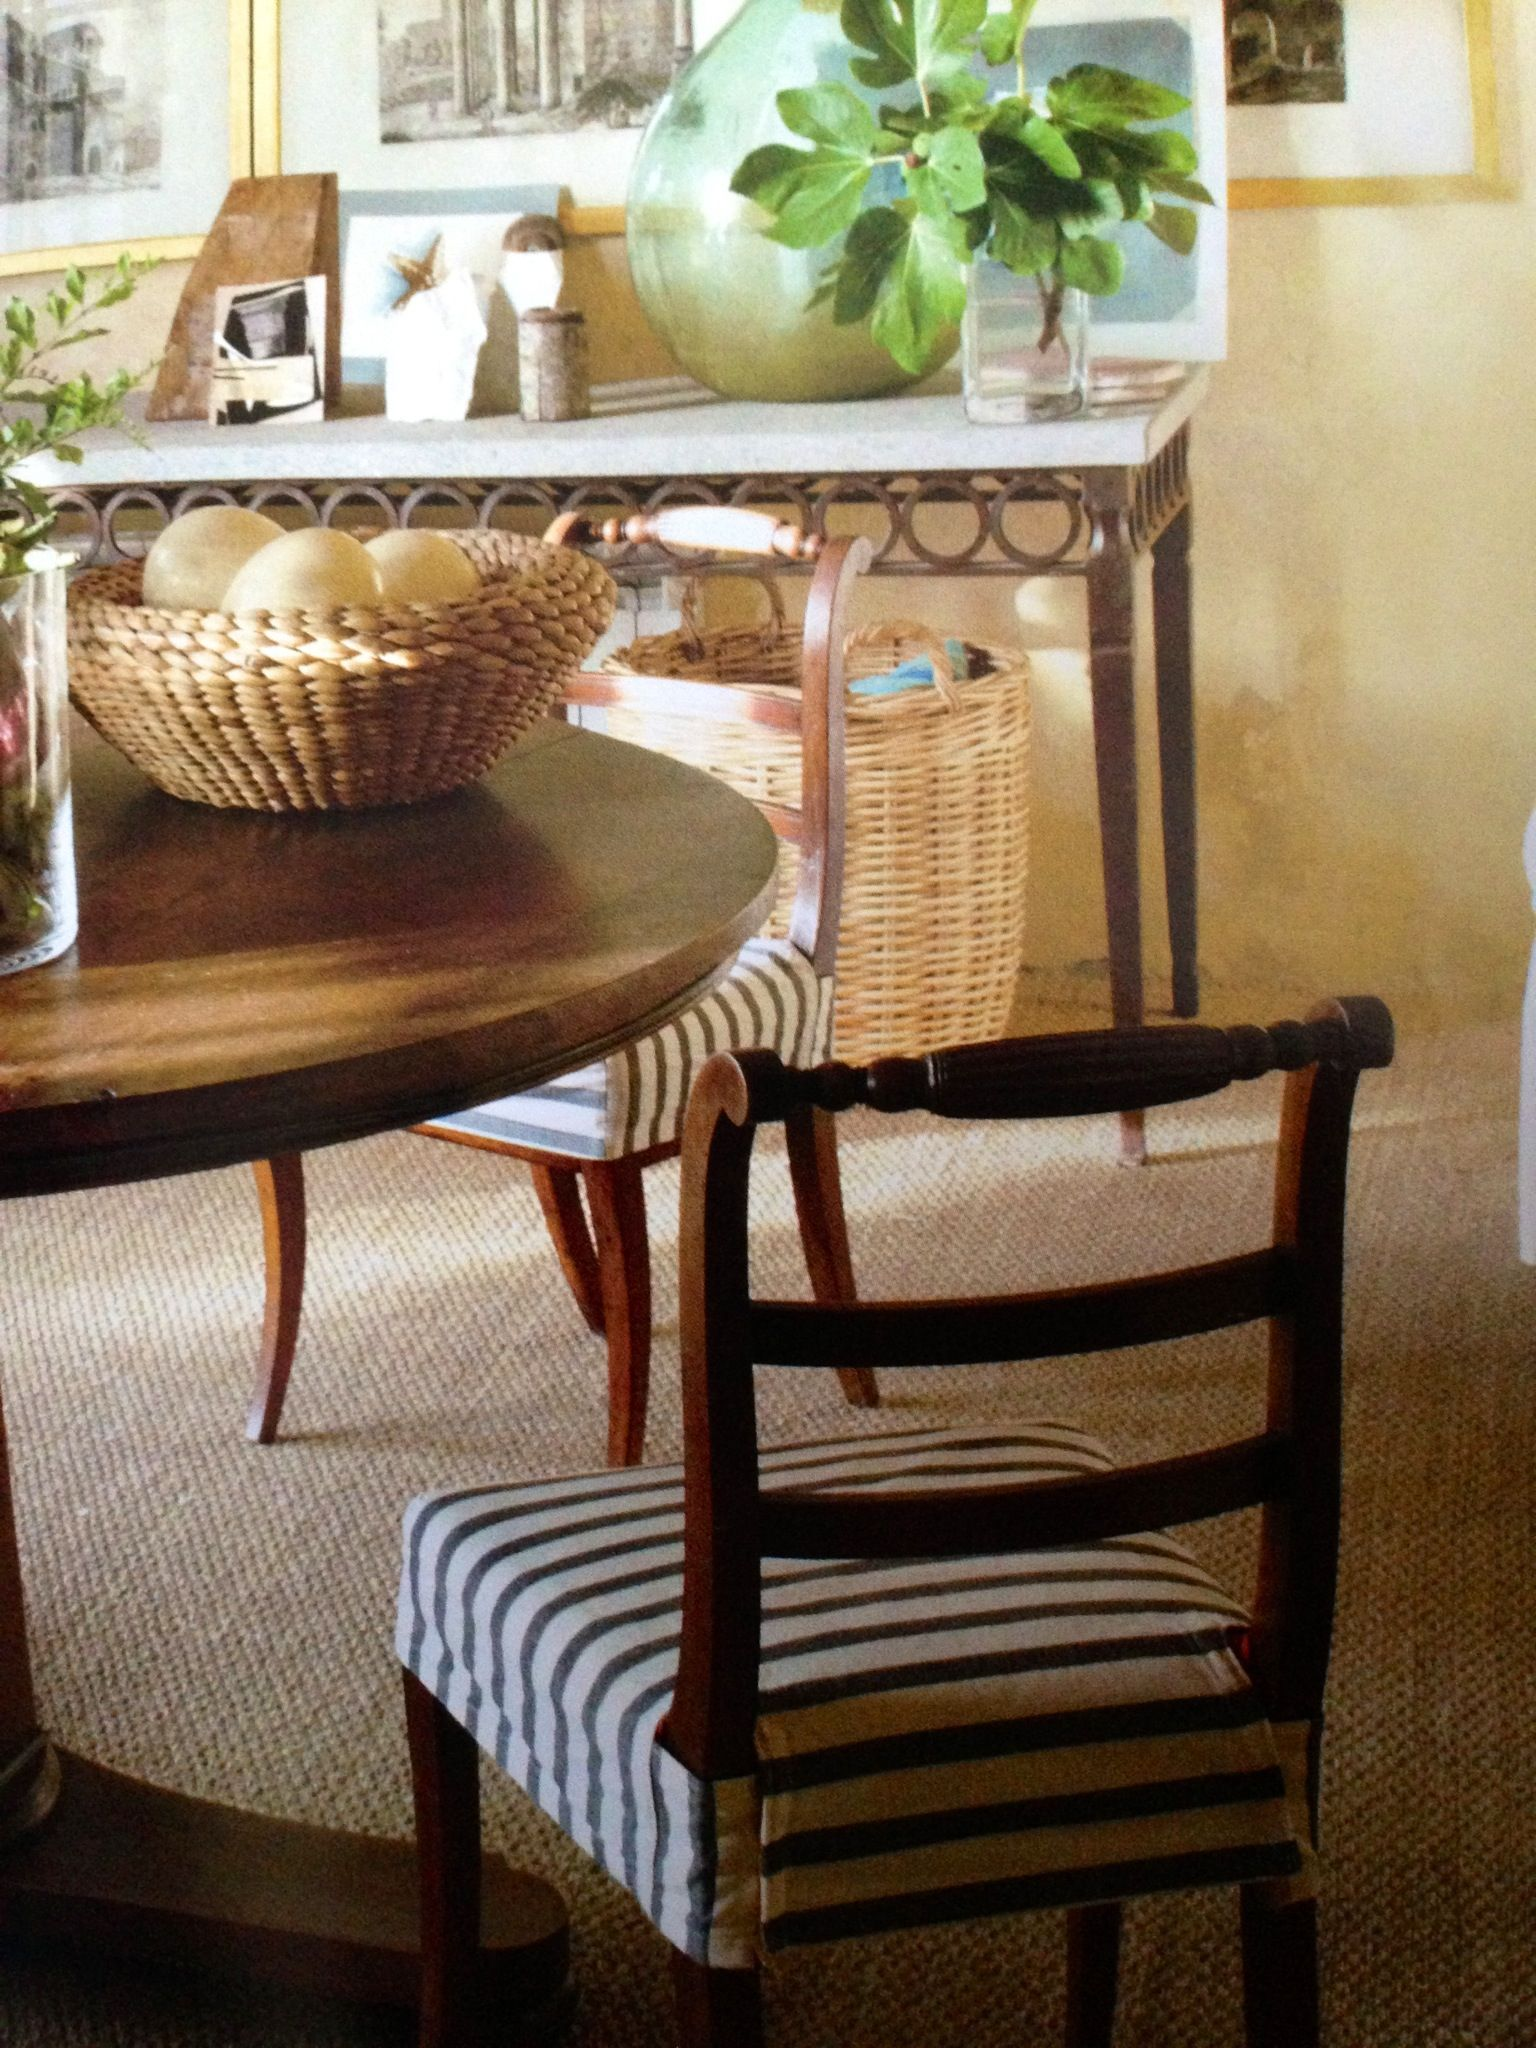 Chair Seat Covers Perfect With No Frills. Nicely Tailored. Want In White  Sunbrella Fabric For My Dining Chairs.